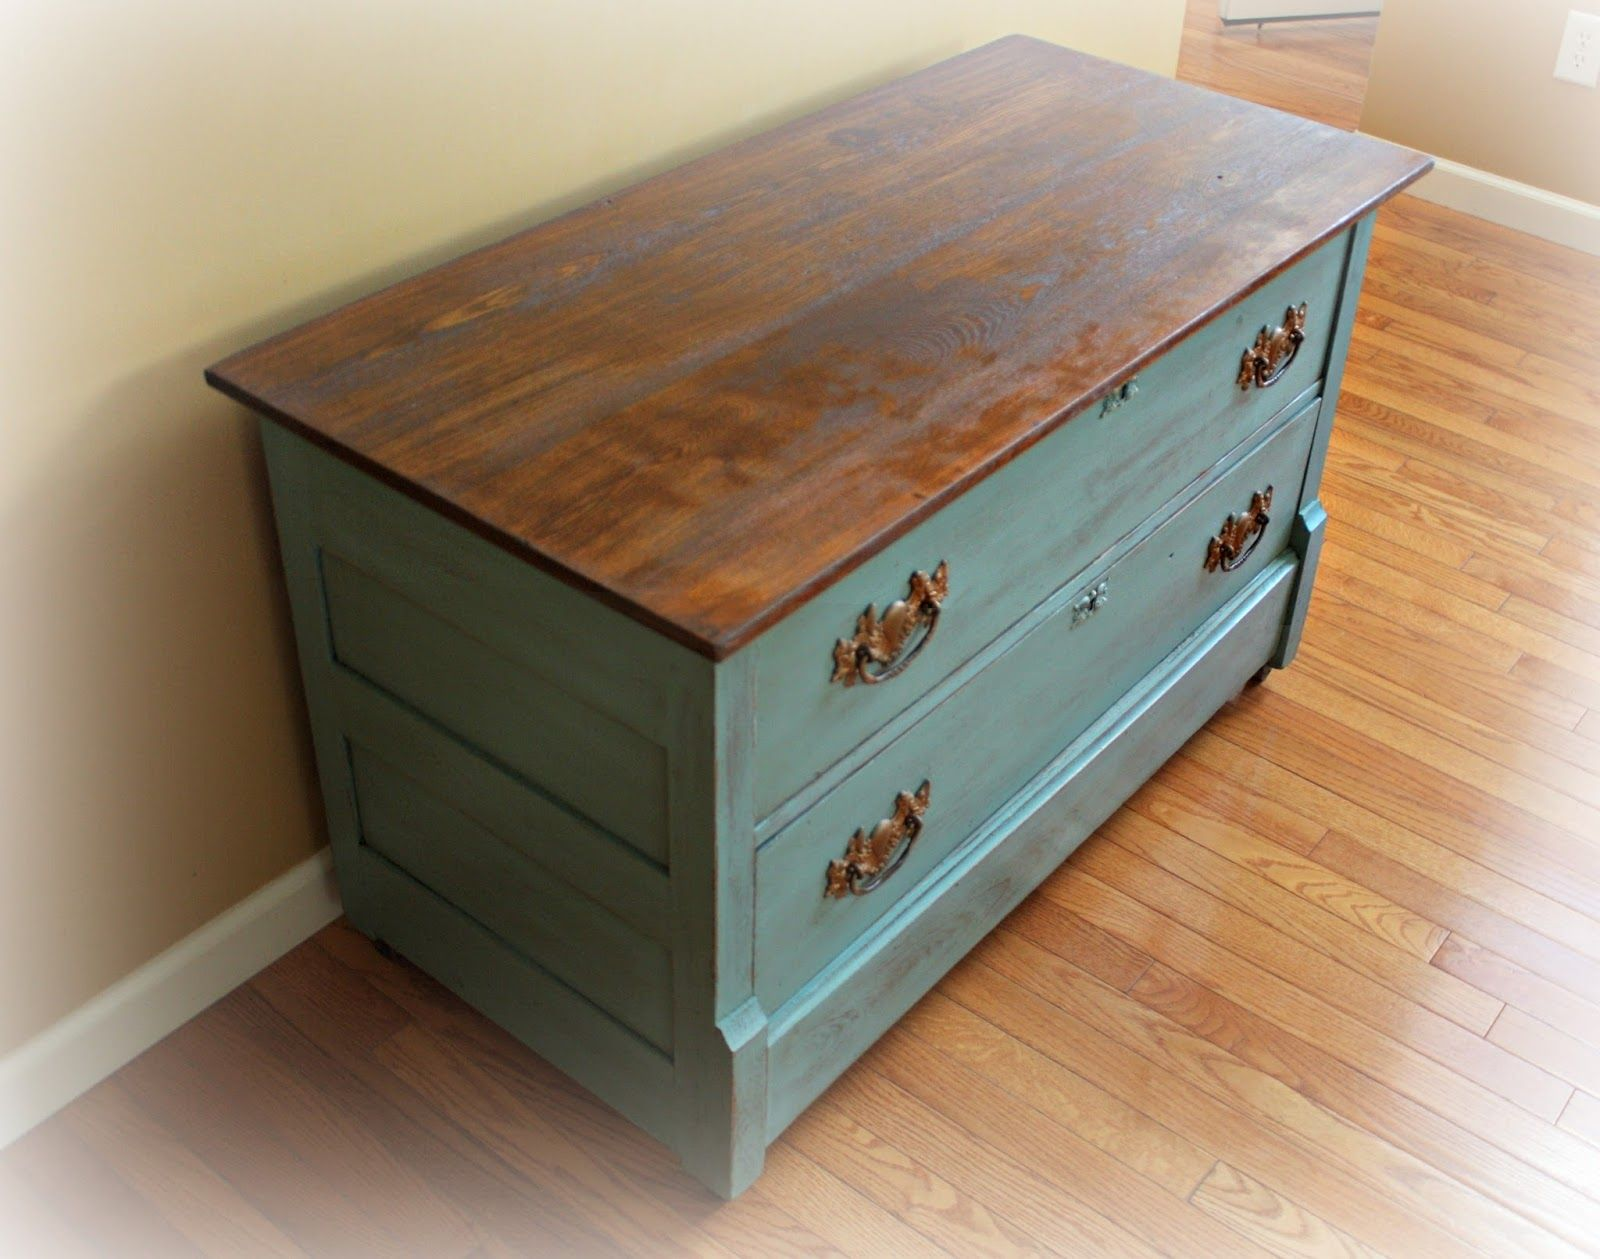 Finished Antique Dresser Painted In Provence Blue Annie Sloan Chalk Paint Paint Furniture Furniture Refinishing Furniture